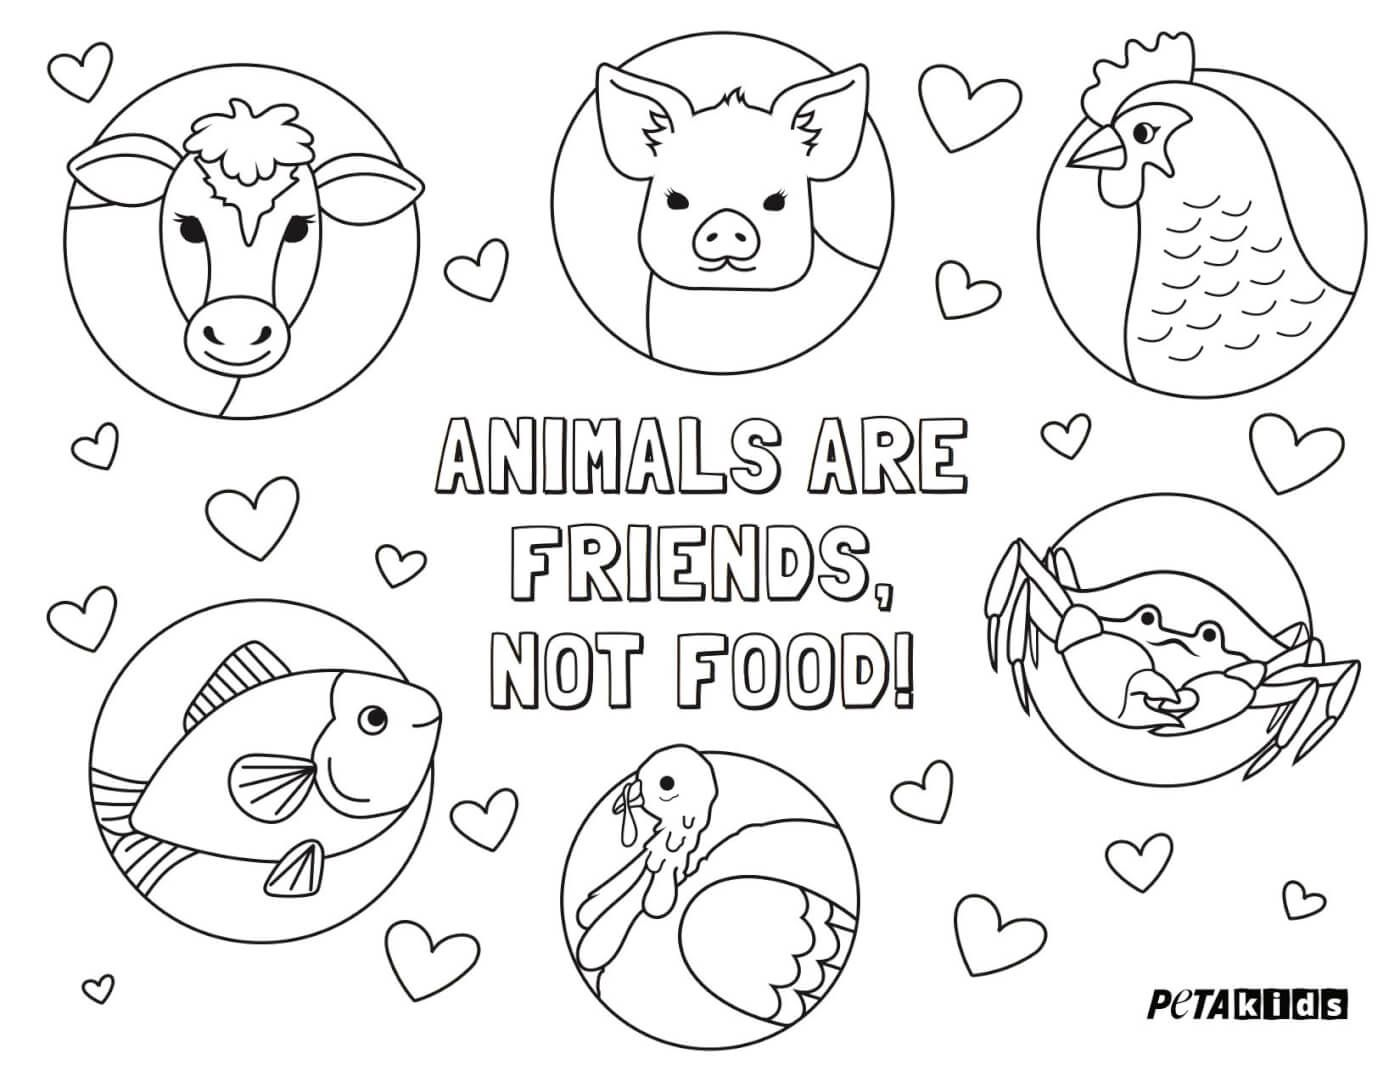 Animals Are Friends Not Food Coloring Sheet Activities Peta Kids Animals Food Coloring Coloring Sheets